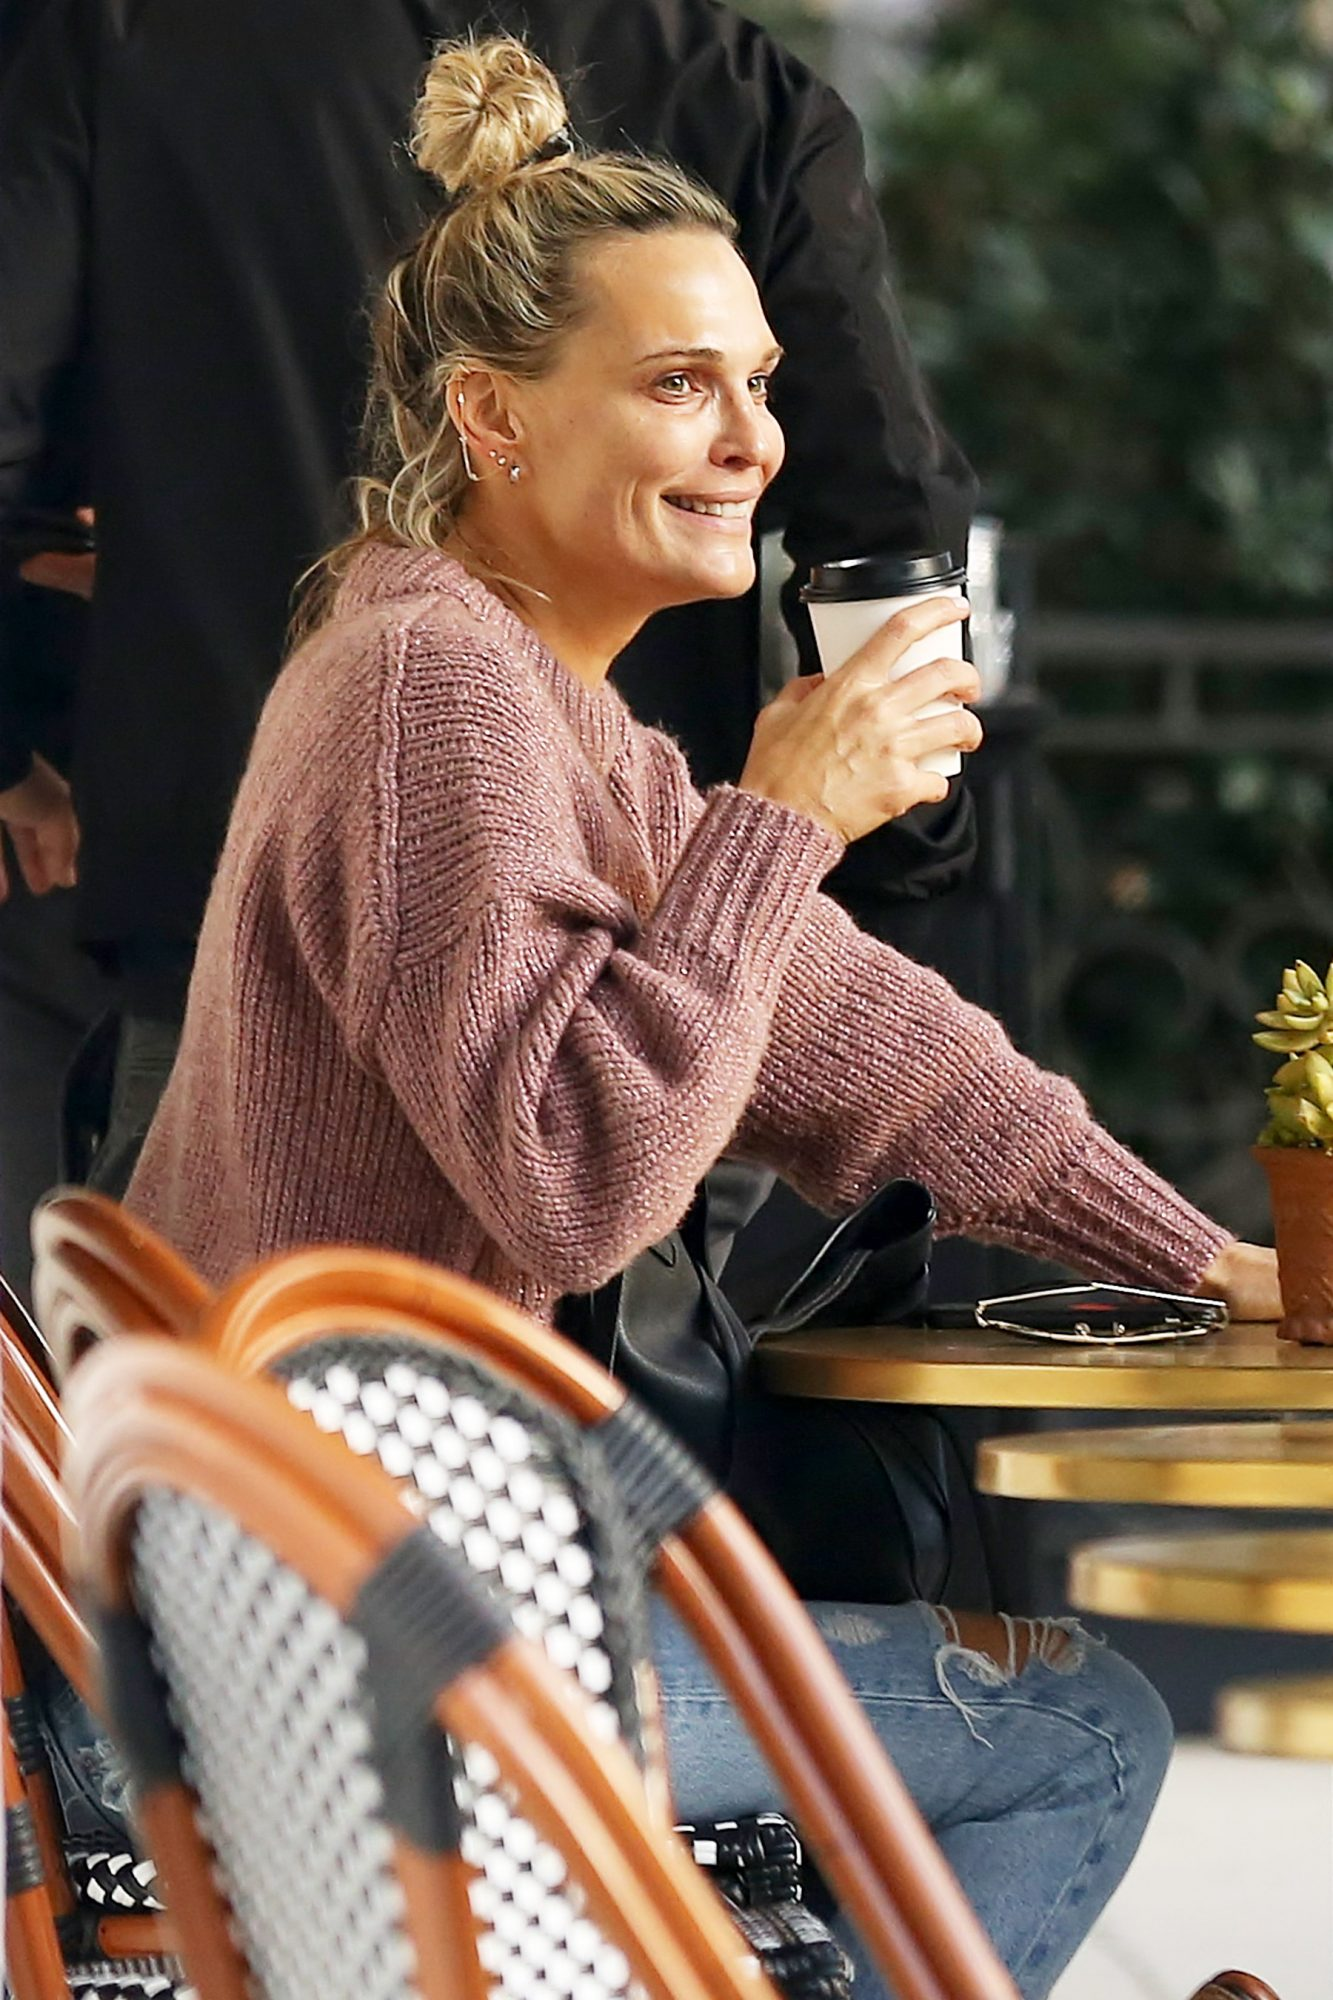 EXCLUSIVE: Makeup Free Molly Sims Gets A Coffee With A Male Friend